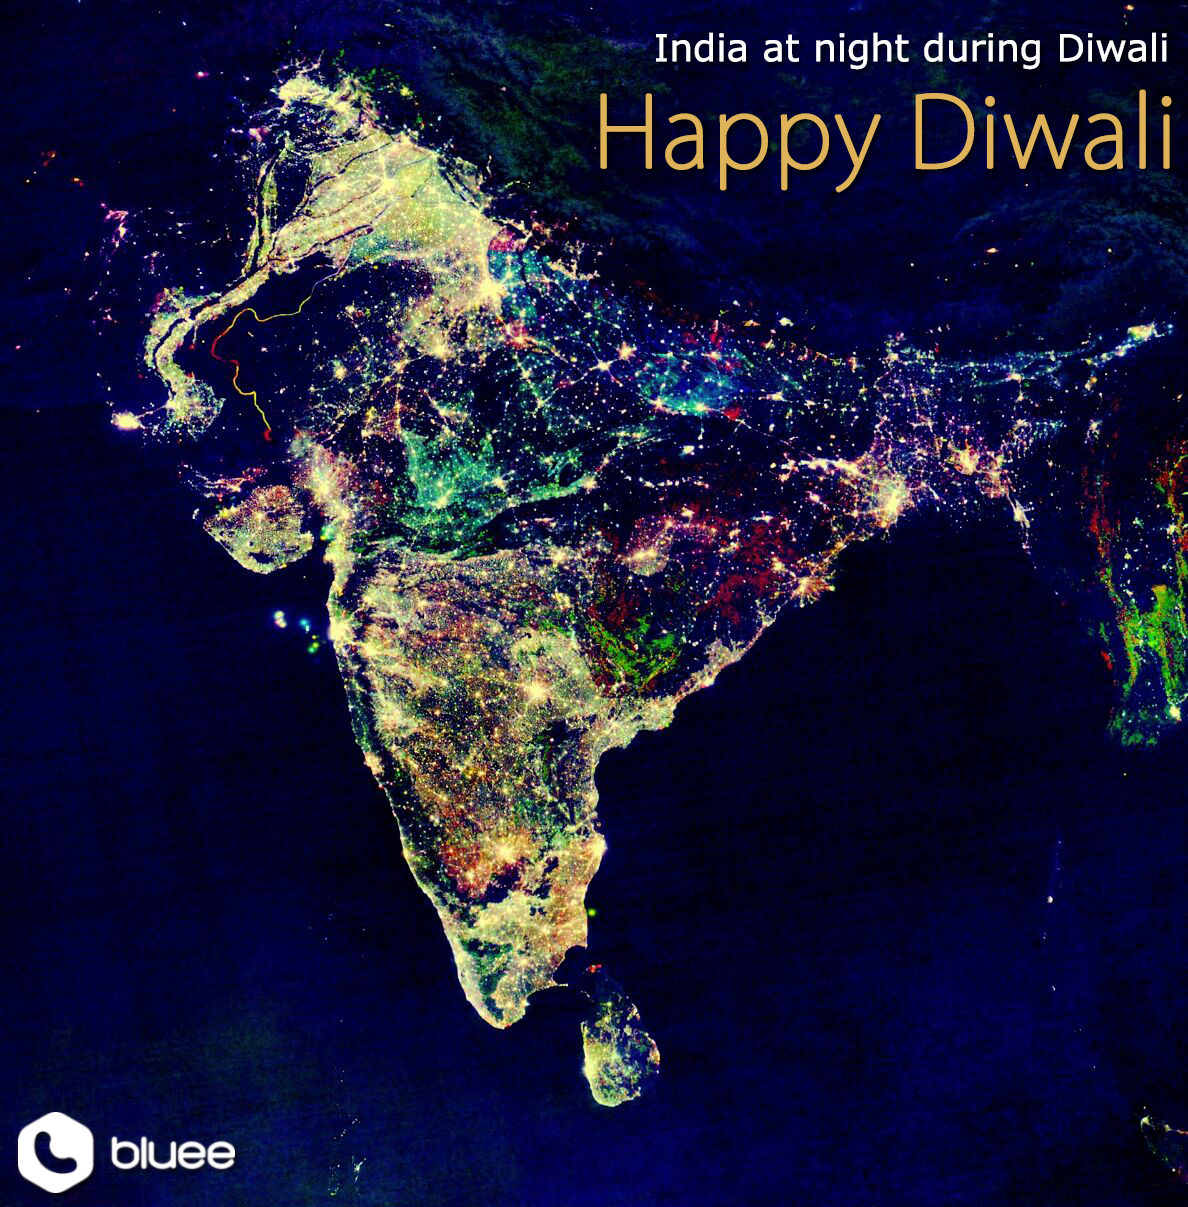 It's Diwali time! India's biggest, brightest, and happiest national holiday.